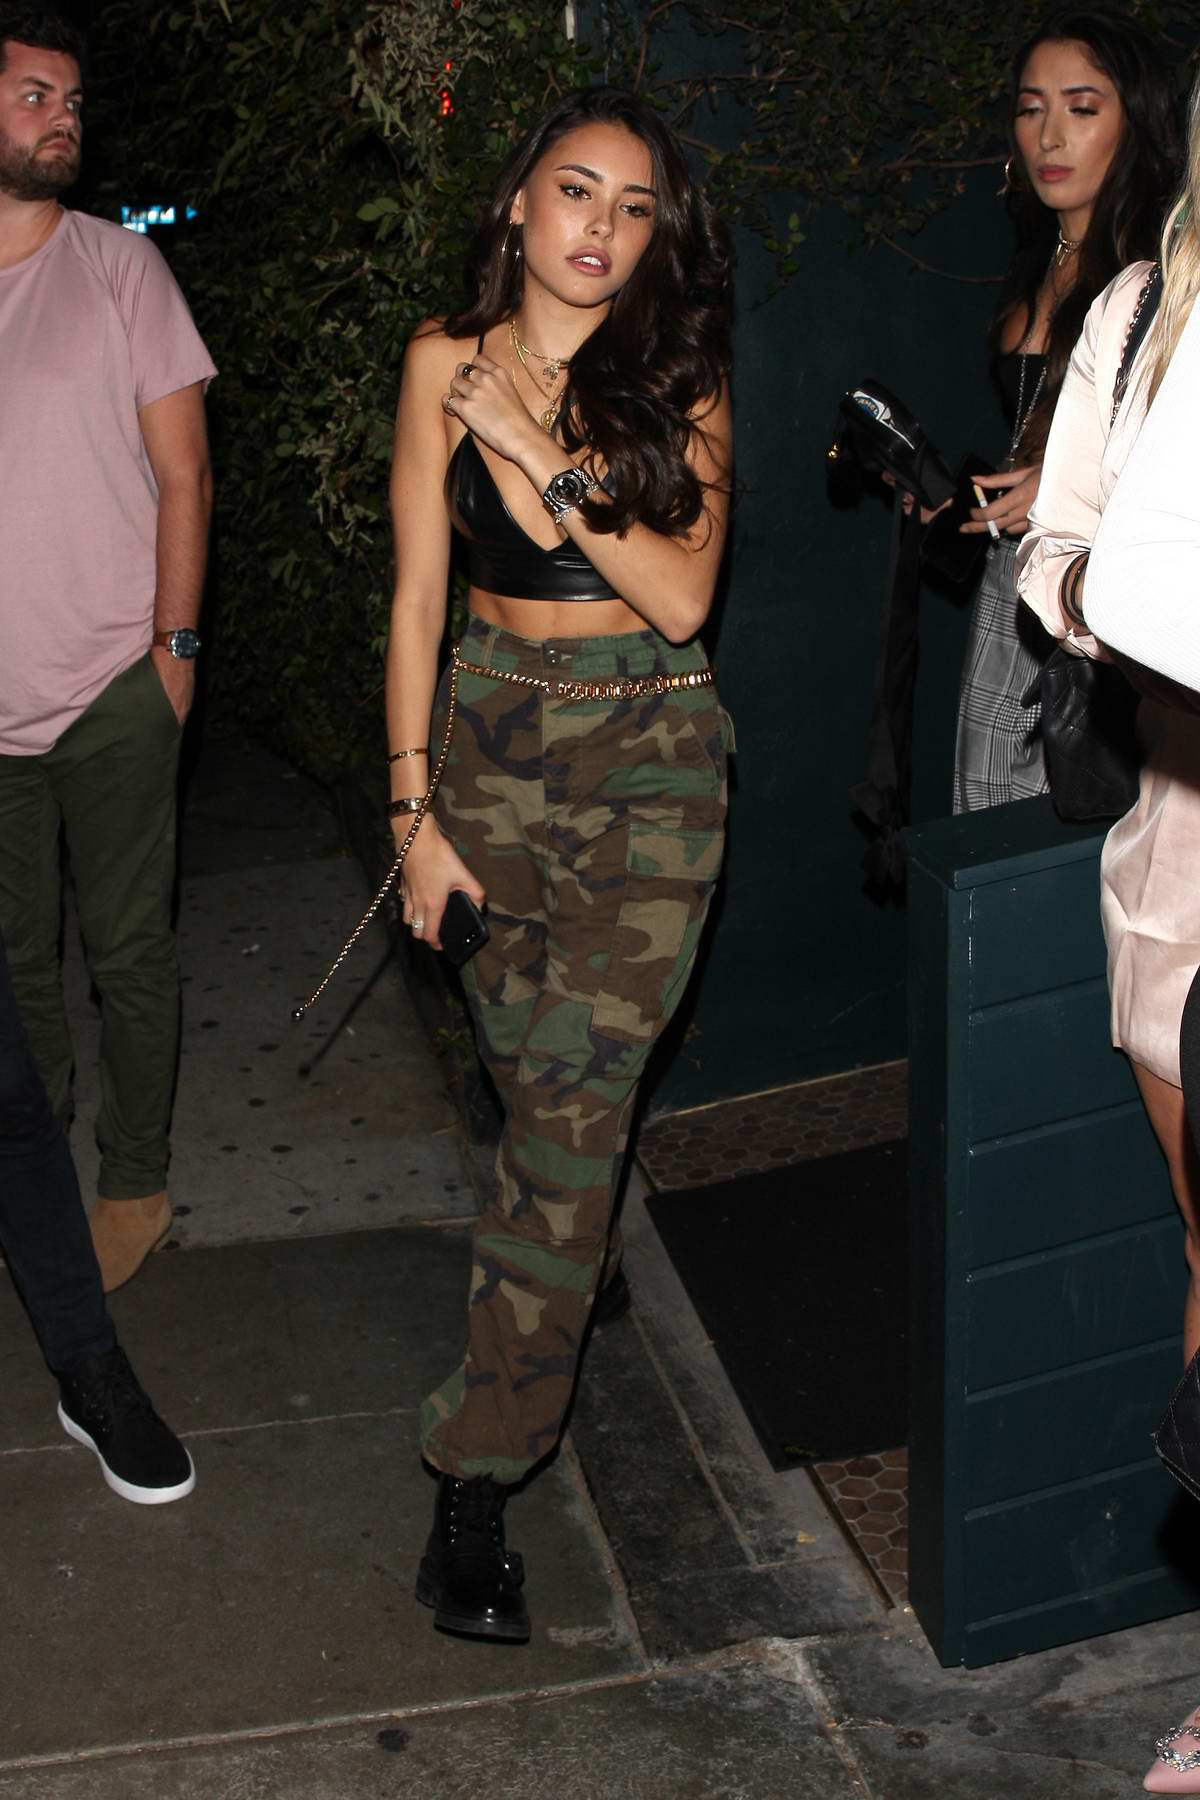 Madison Beer wears a black leather top and camouflage pants as she goes to the Poppy Club with her friends in West Hollywood, Los Angeles